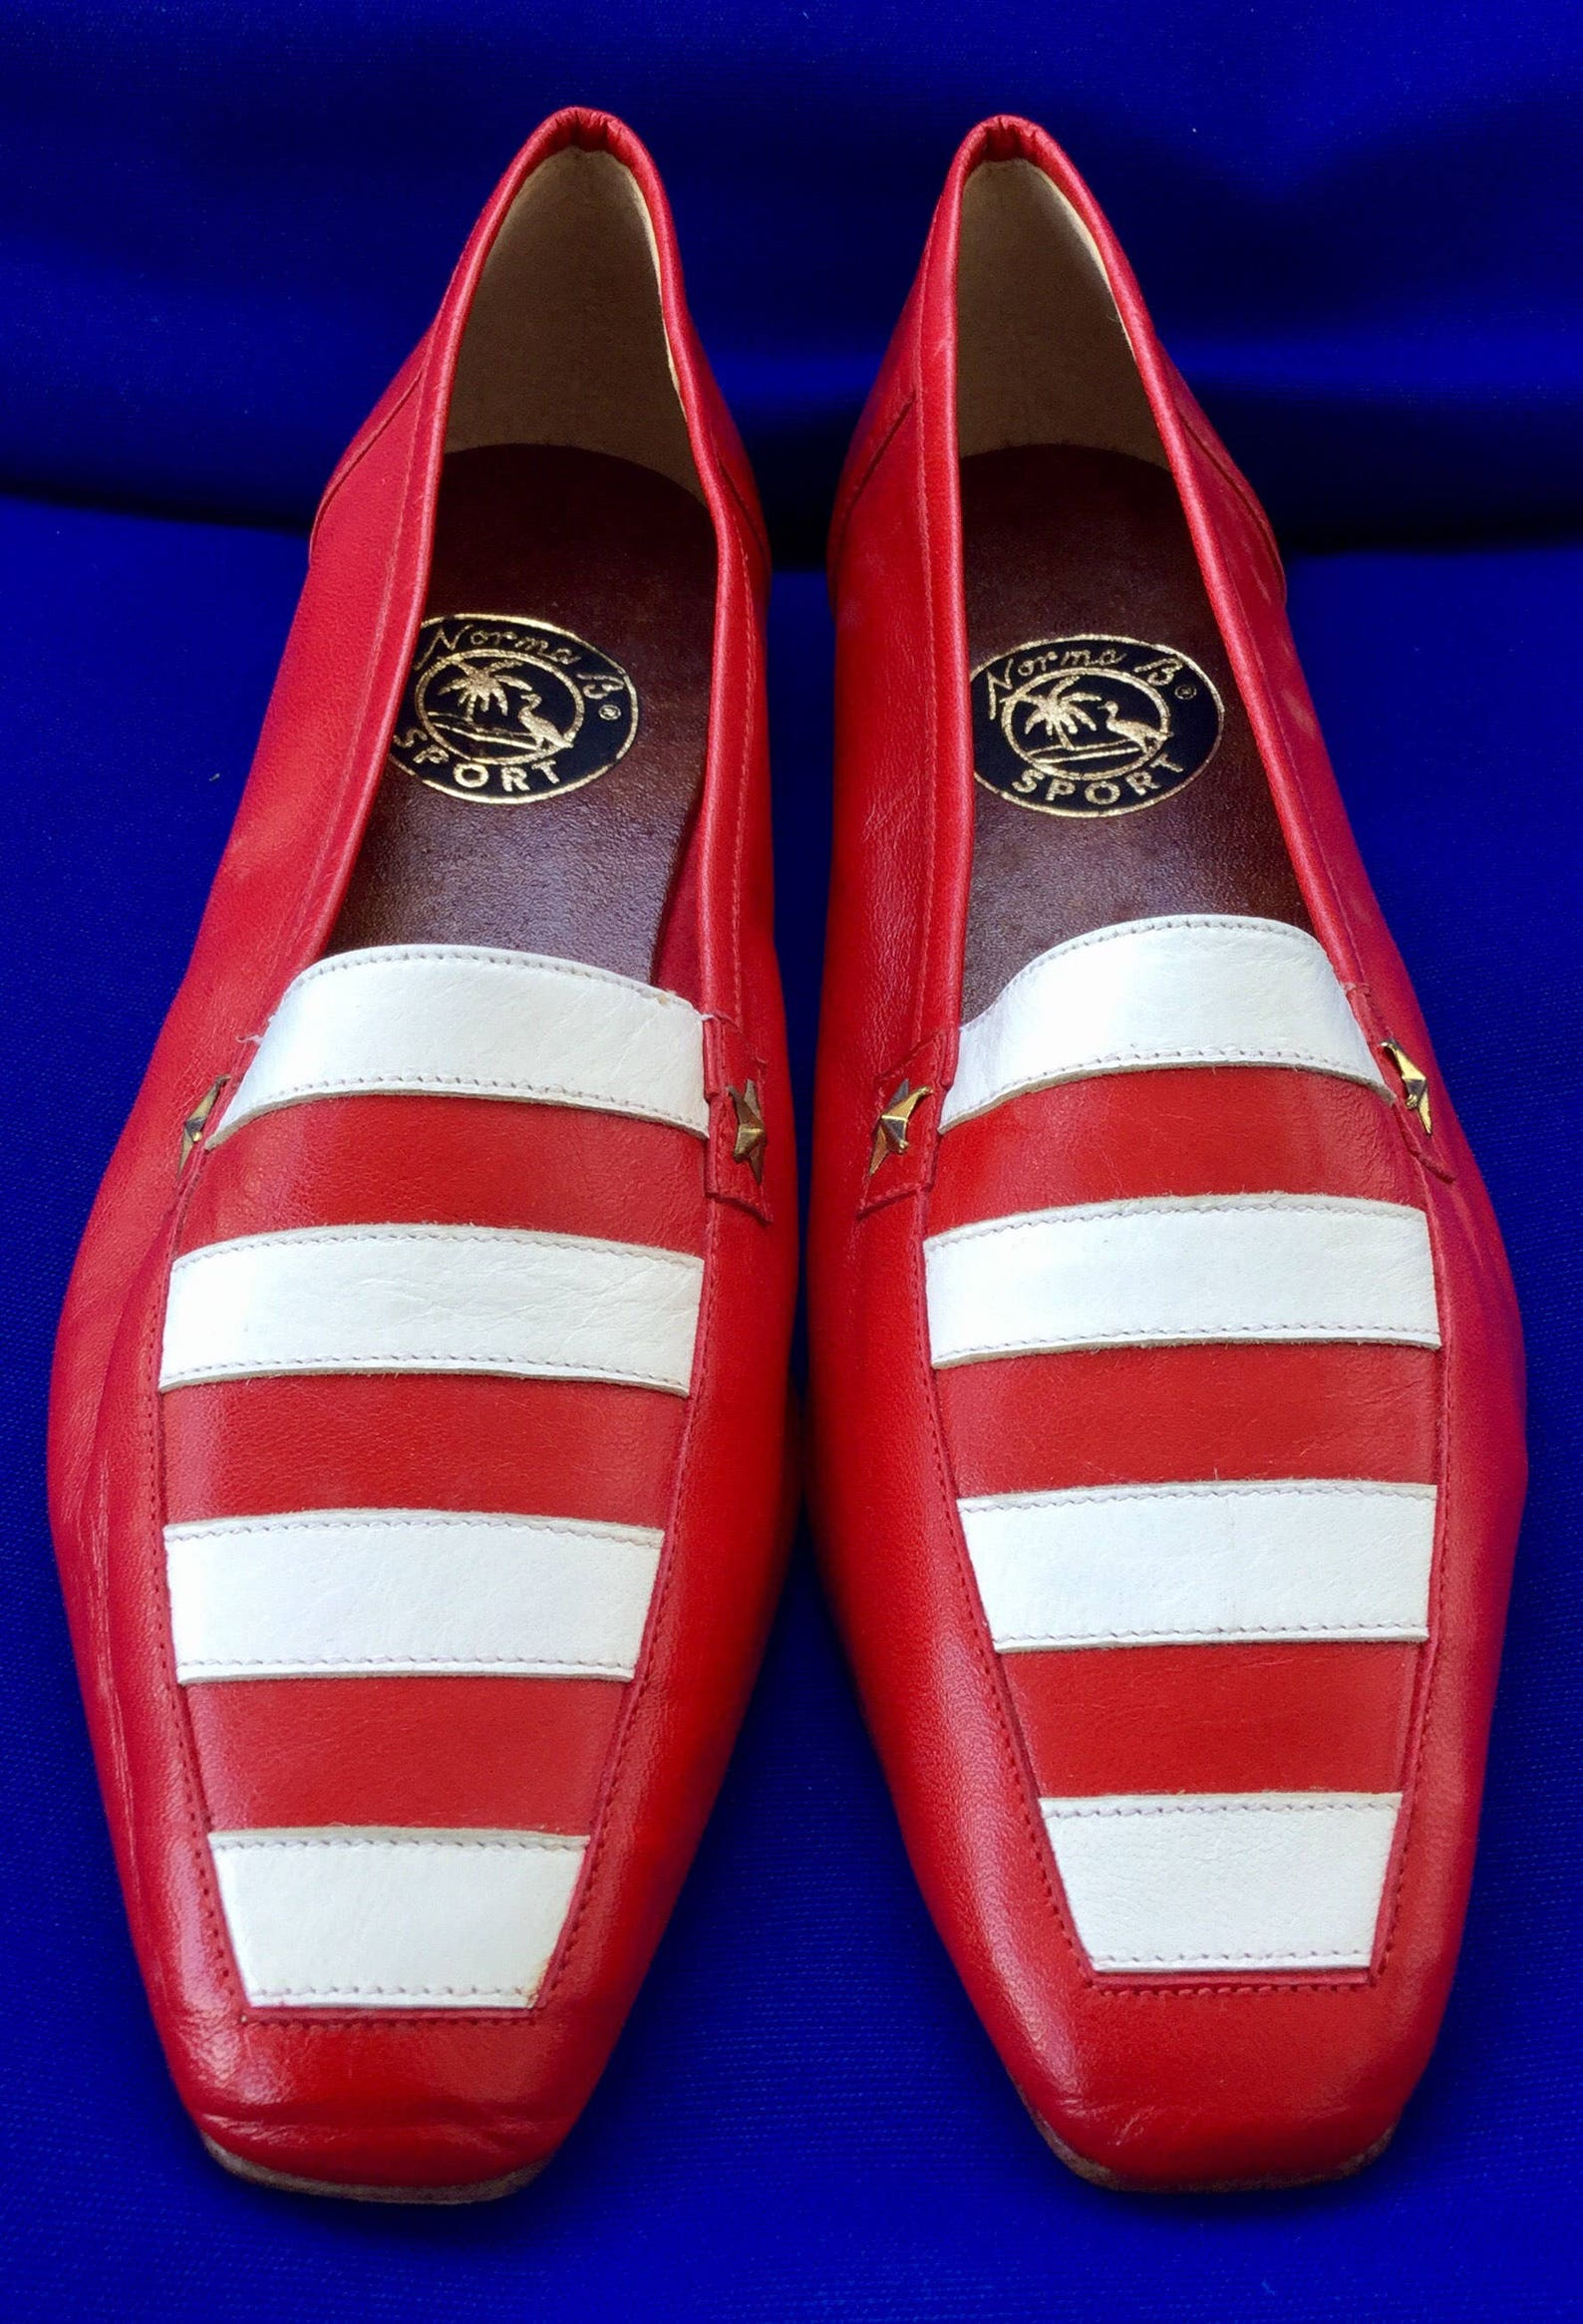 cool vintage norma b sport nautical stripes white/red leather square toe ballet/flats (reduced)